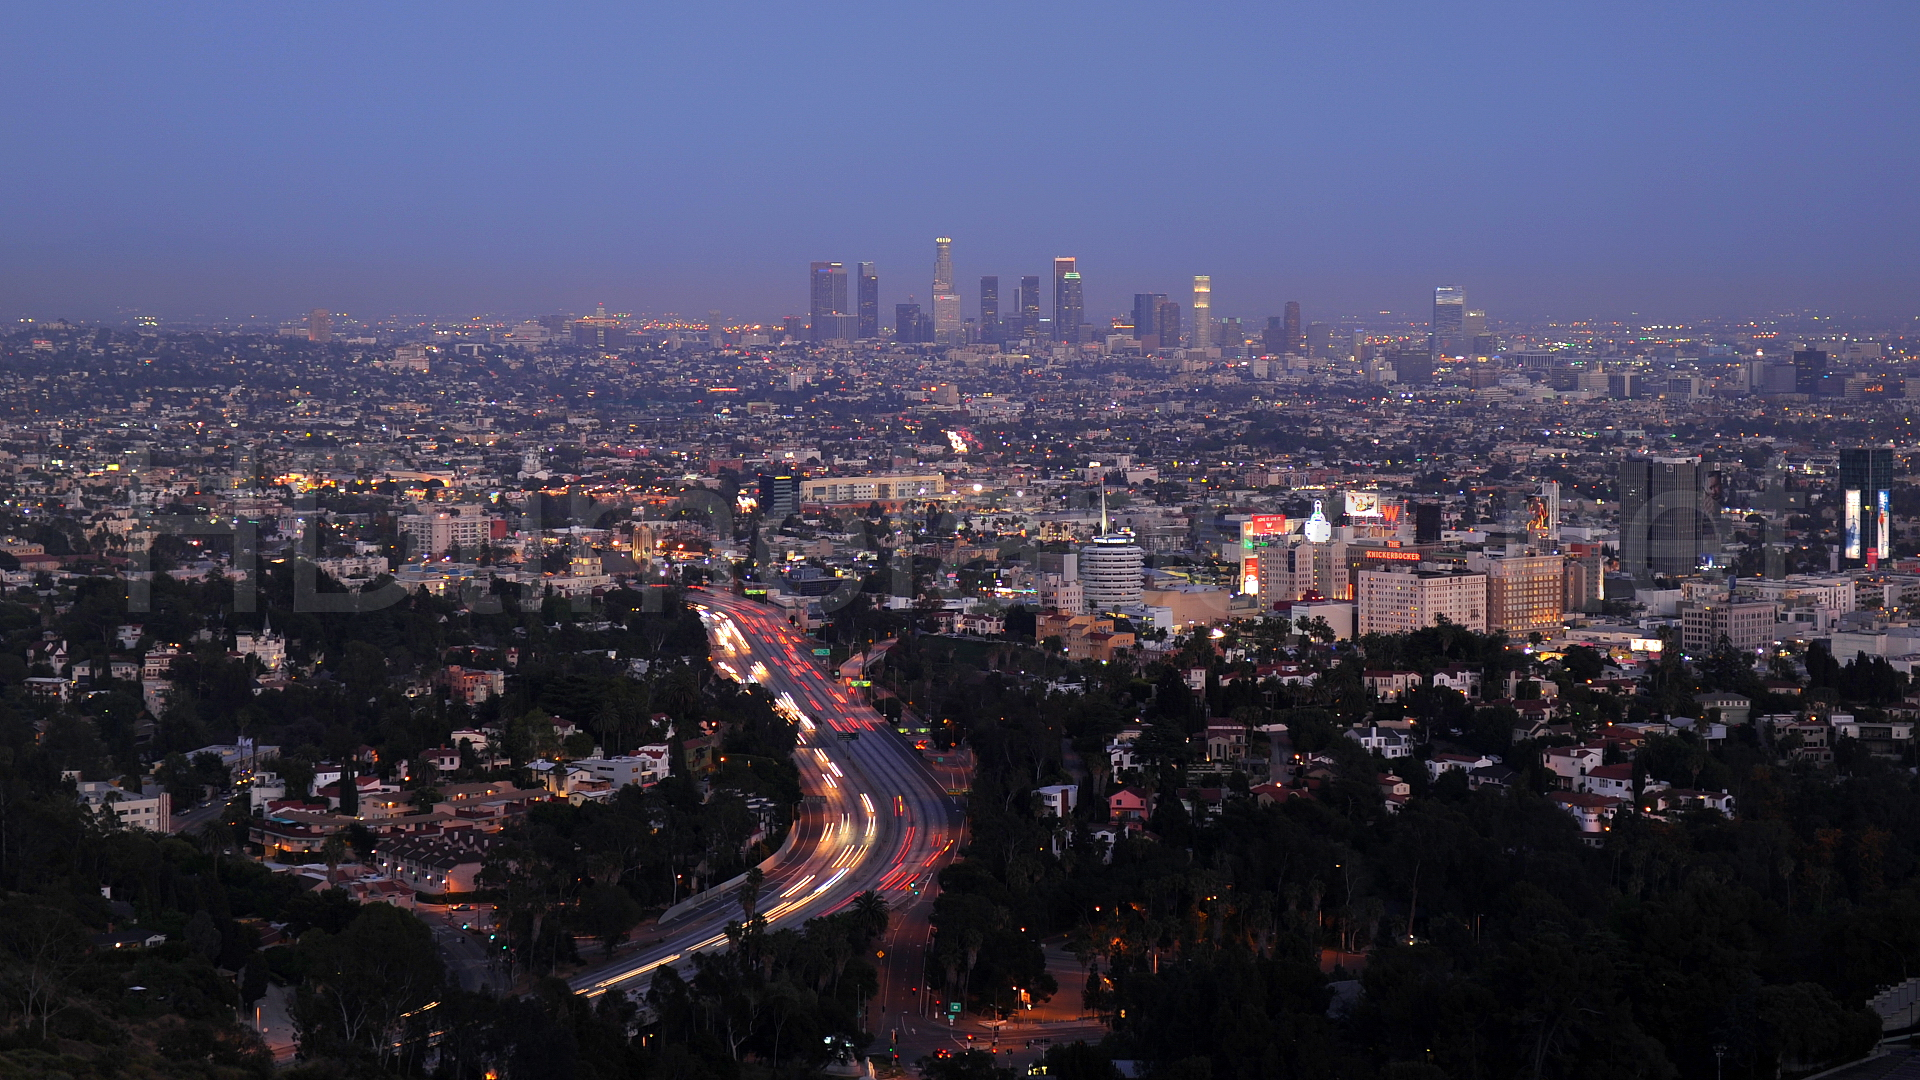 View of Los Angeles from Mulholland Drive - image via  Google .